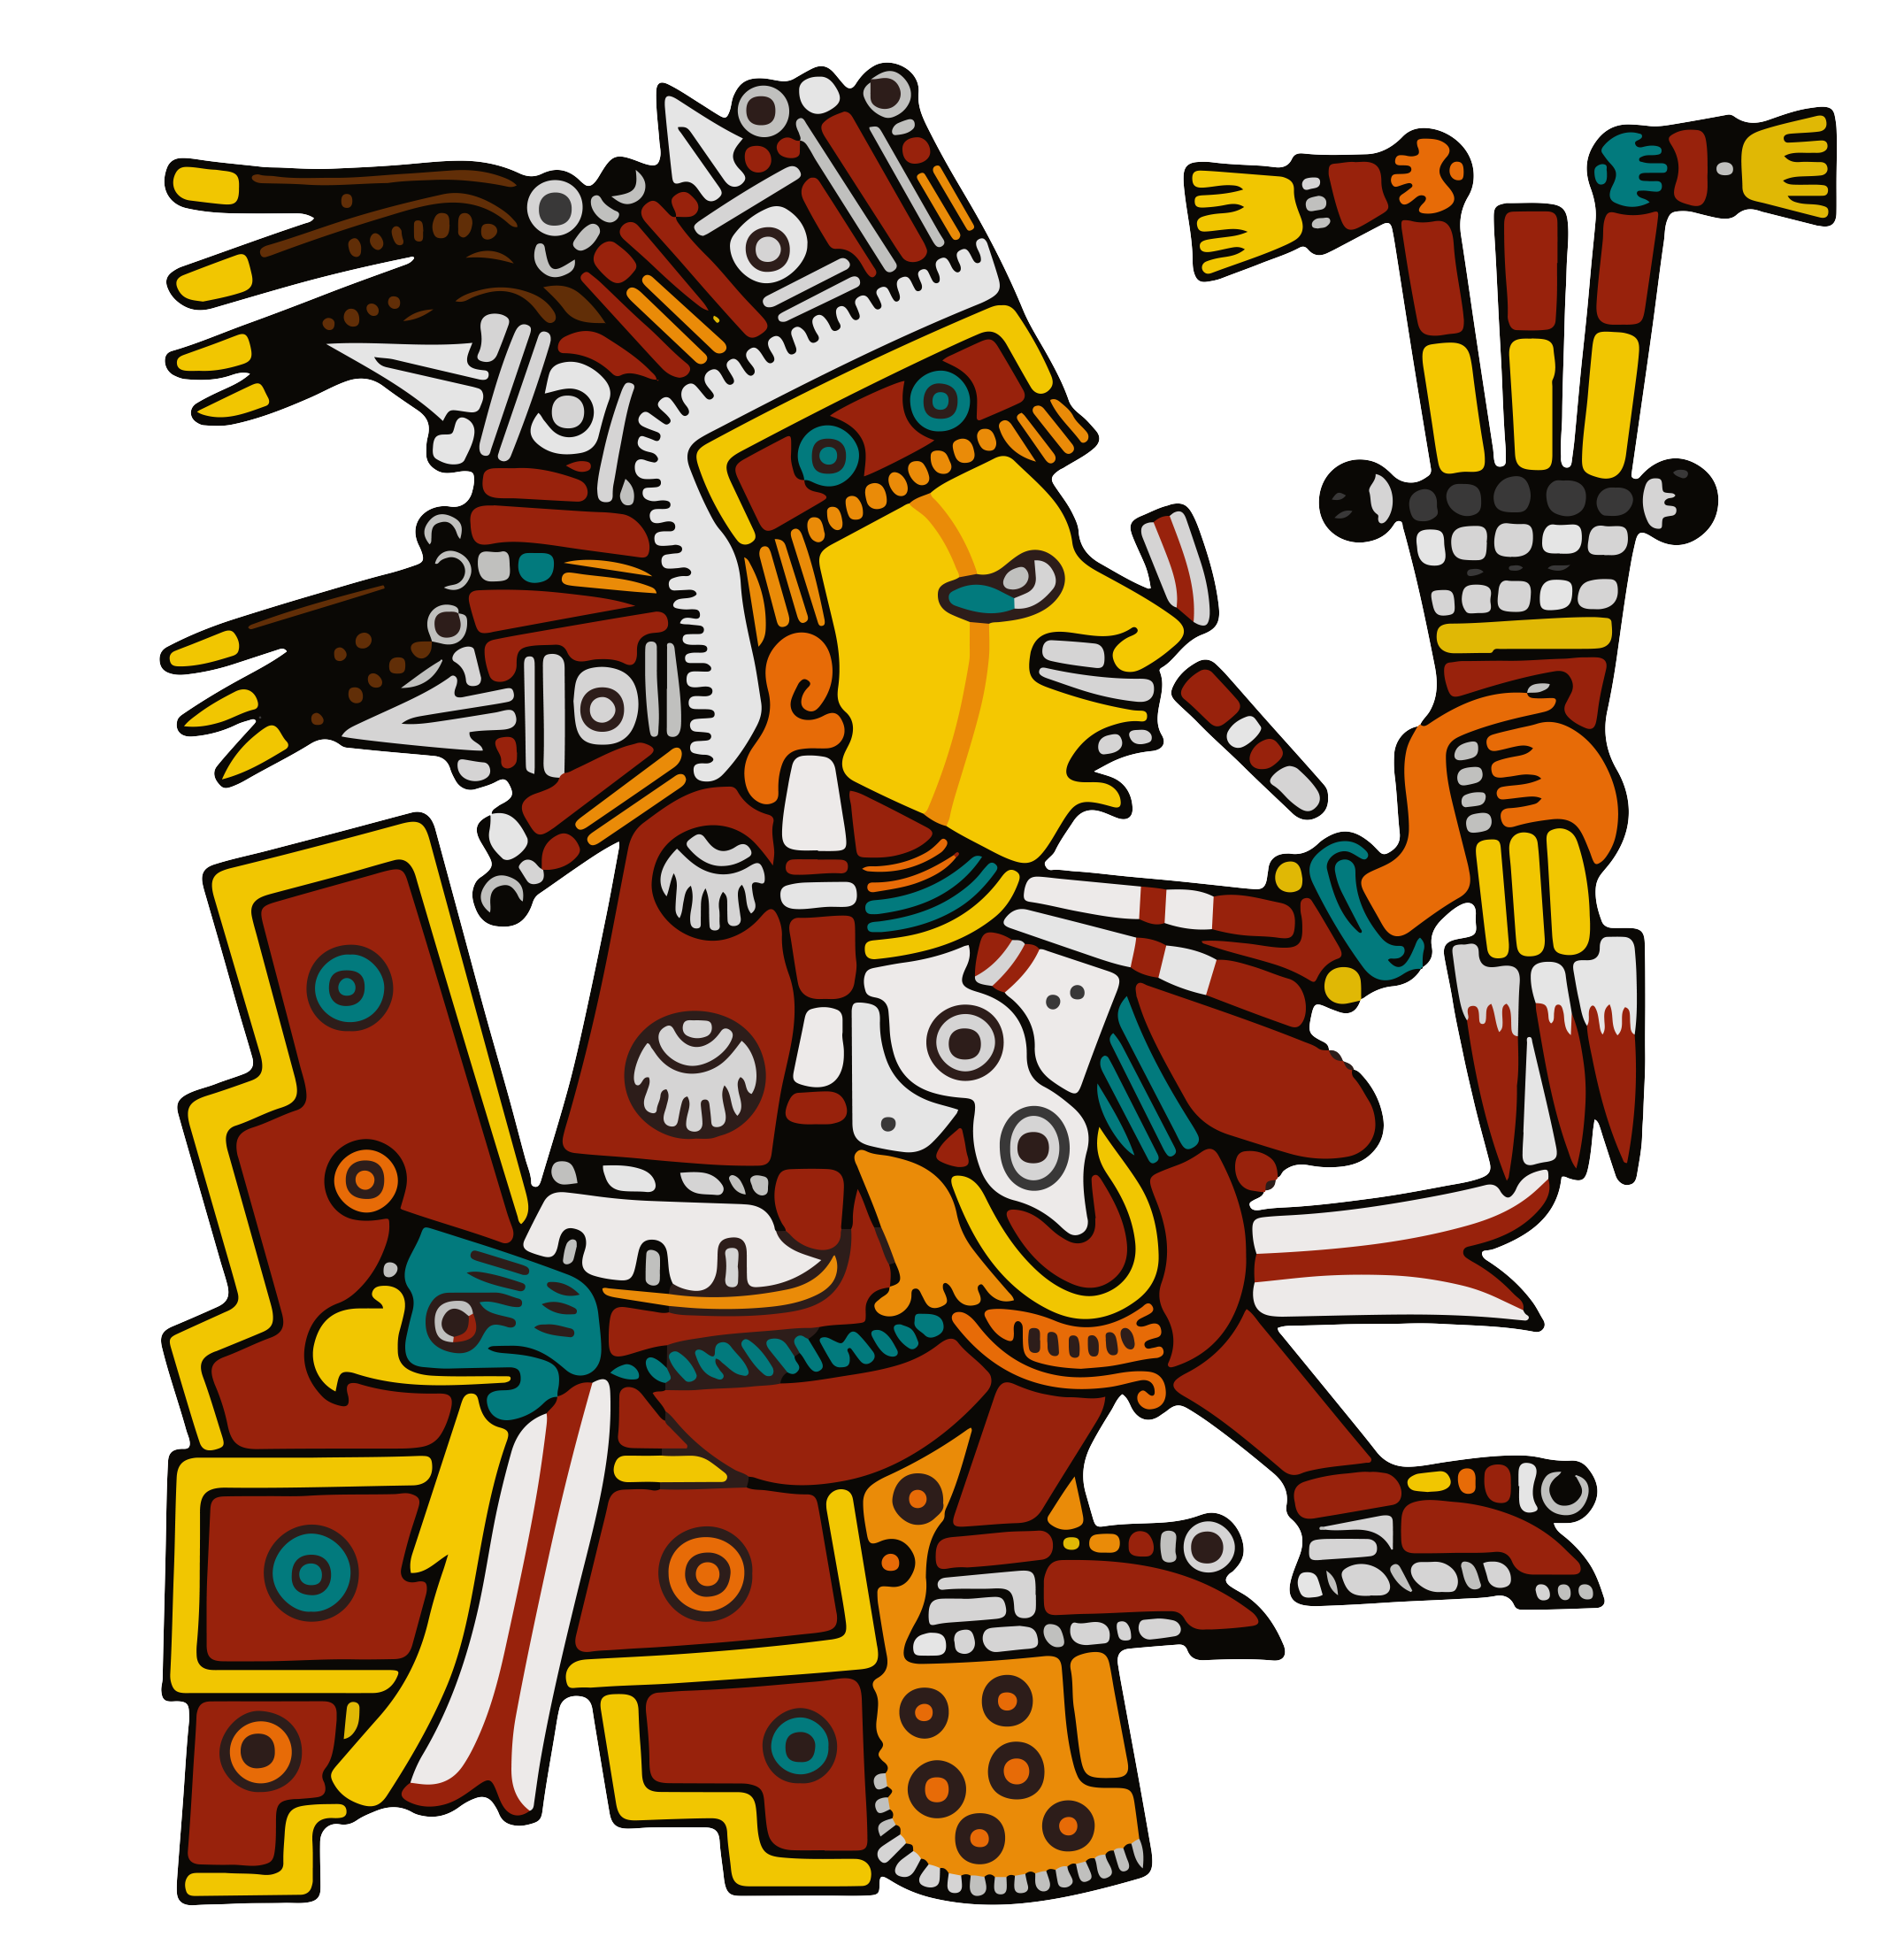 Xipetotec - The symbol of medicine, honoring our Women, the season of Spring and new beginnings. The direction of West.